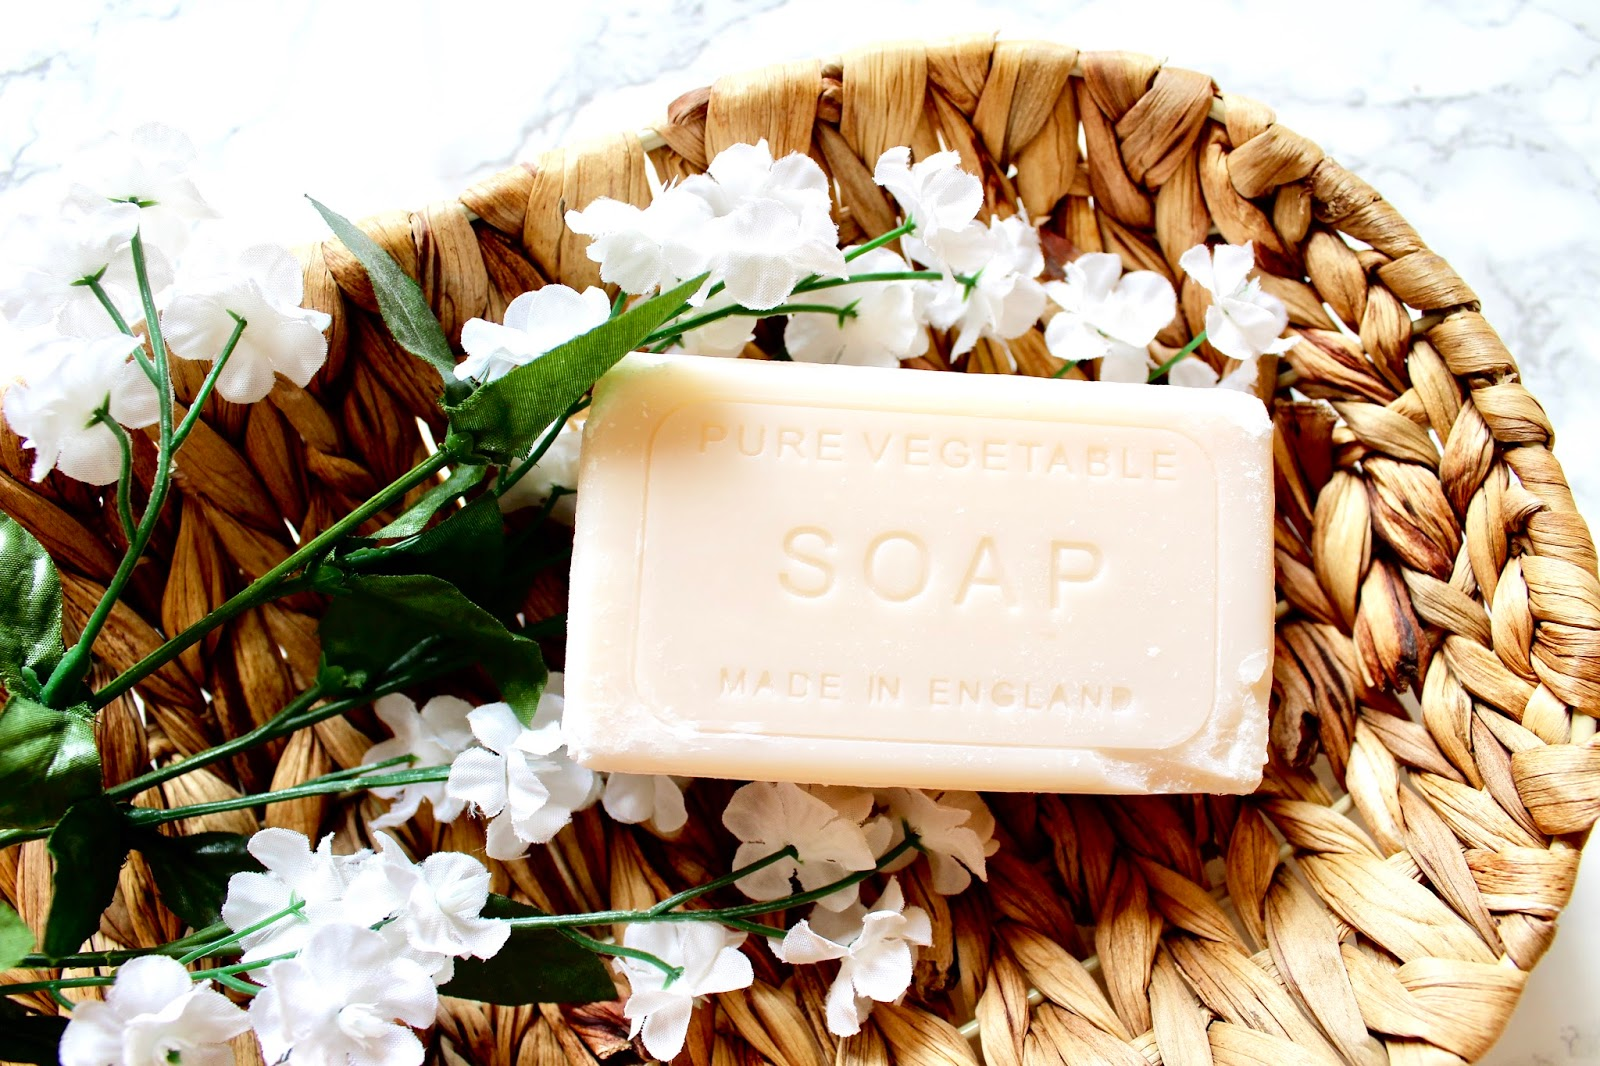 The English Soap Company Rich Shea Butter Soap